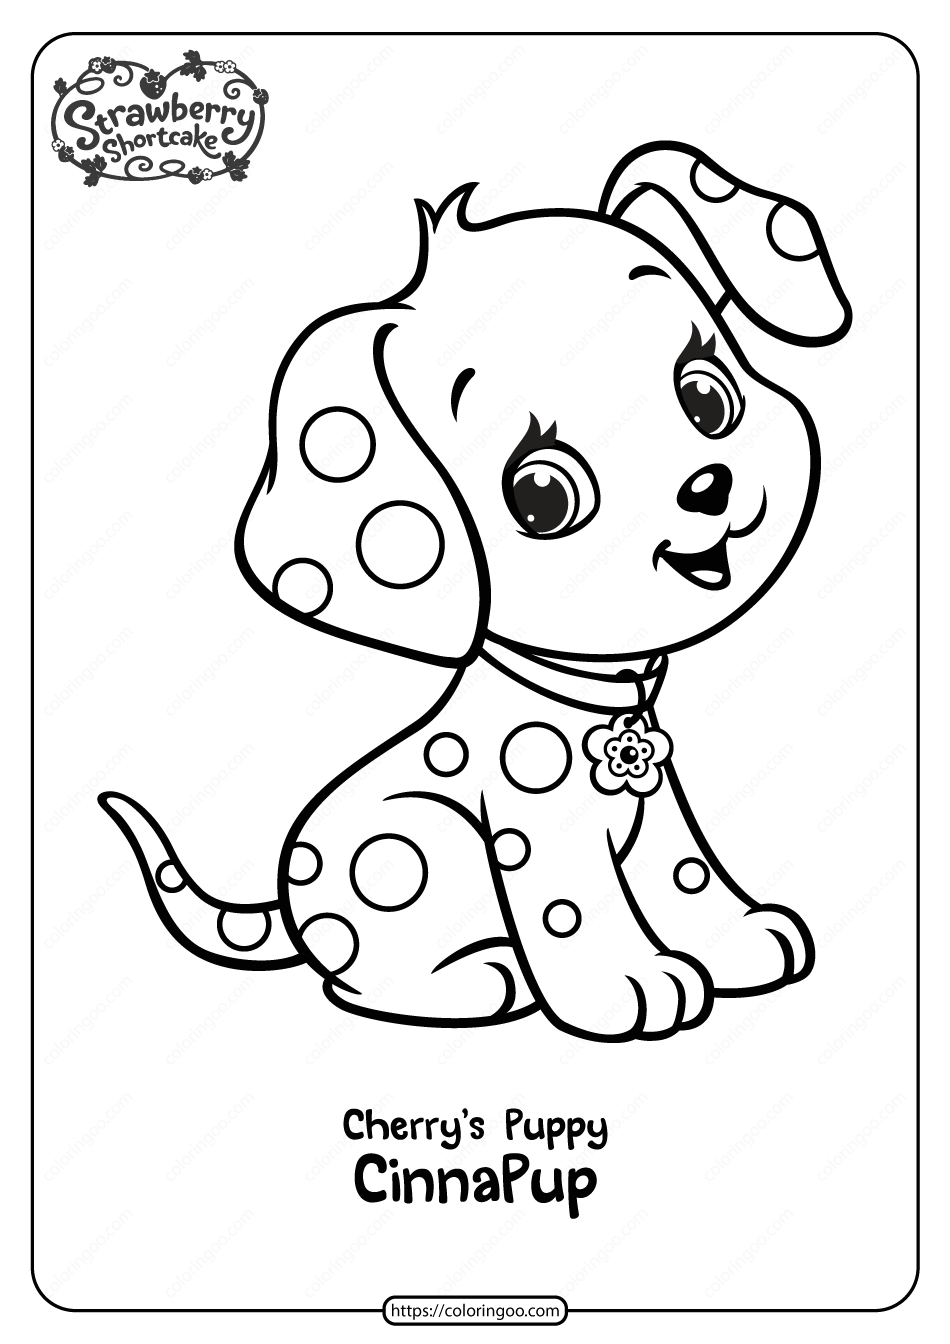 Free Printable Cherry's Puppy Cinnapup Coloring Page